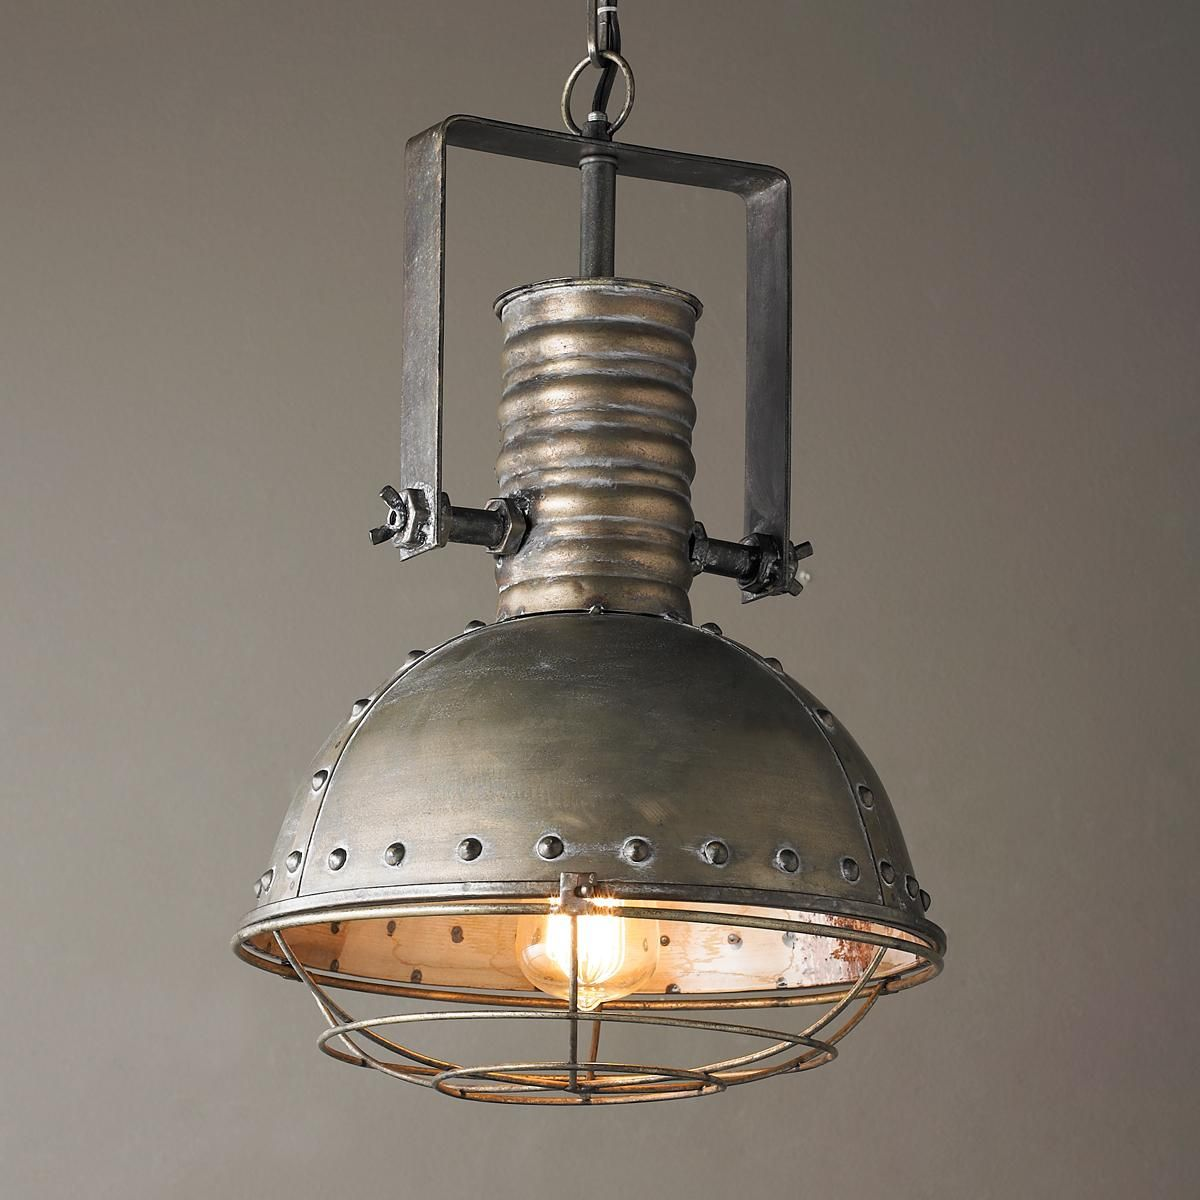 Industrial Style Light Fixtures Home Industrial Caged Pendant With Rivets In 2019 Industrial